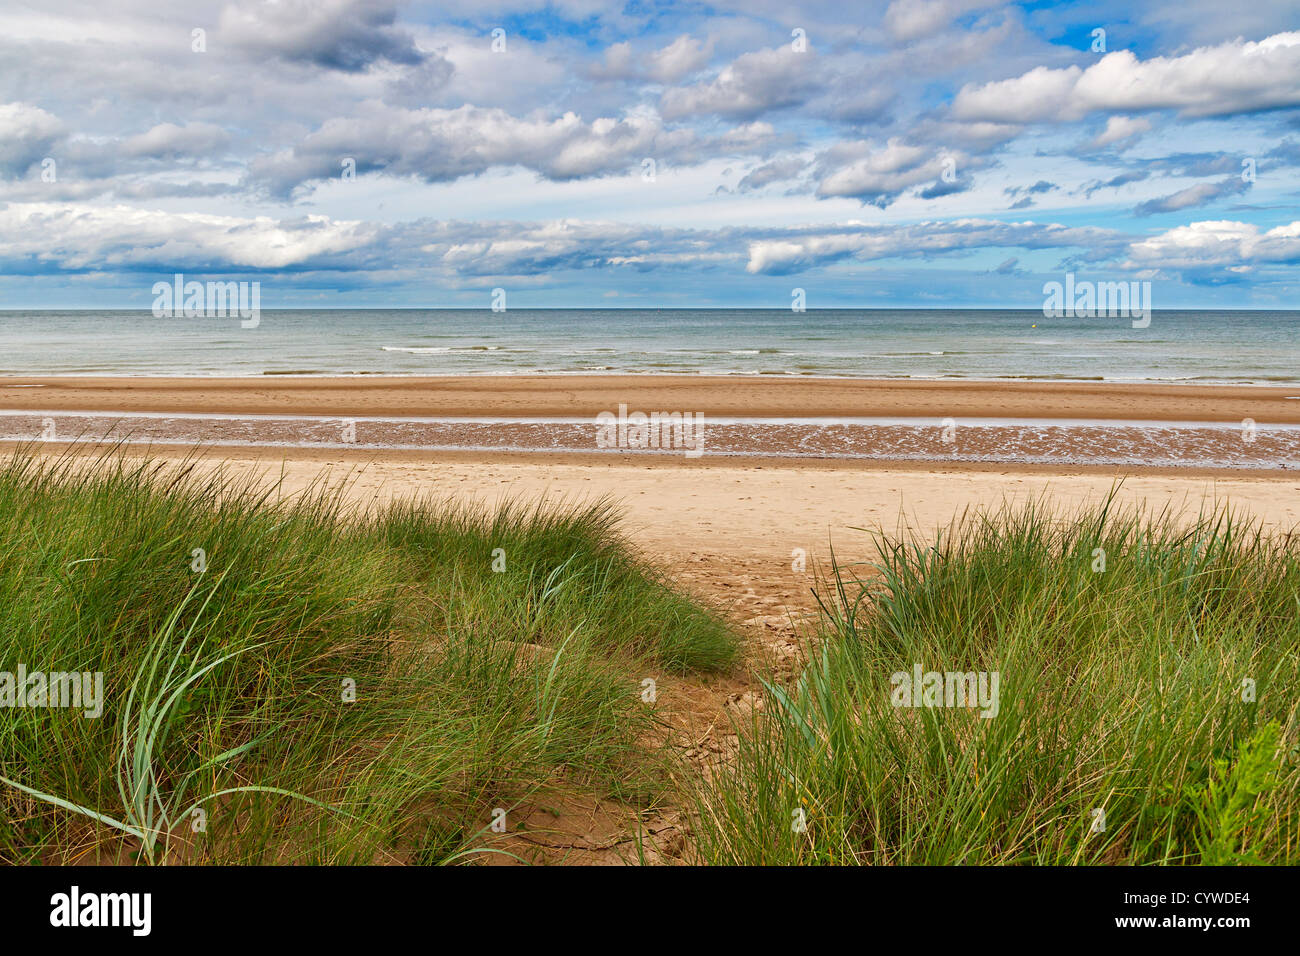 Omaha Beach, one of the D-Day beaches of Normandy, France Stock Photo